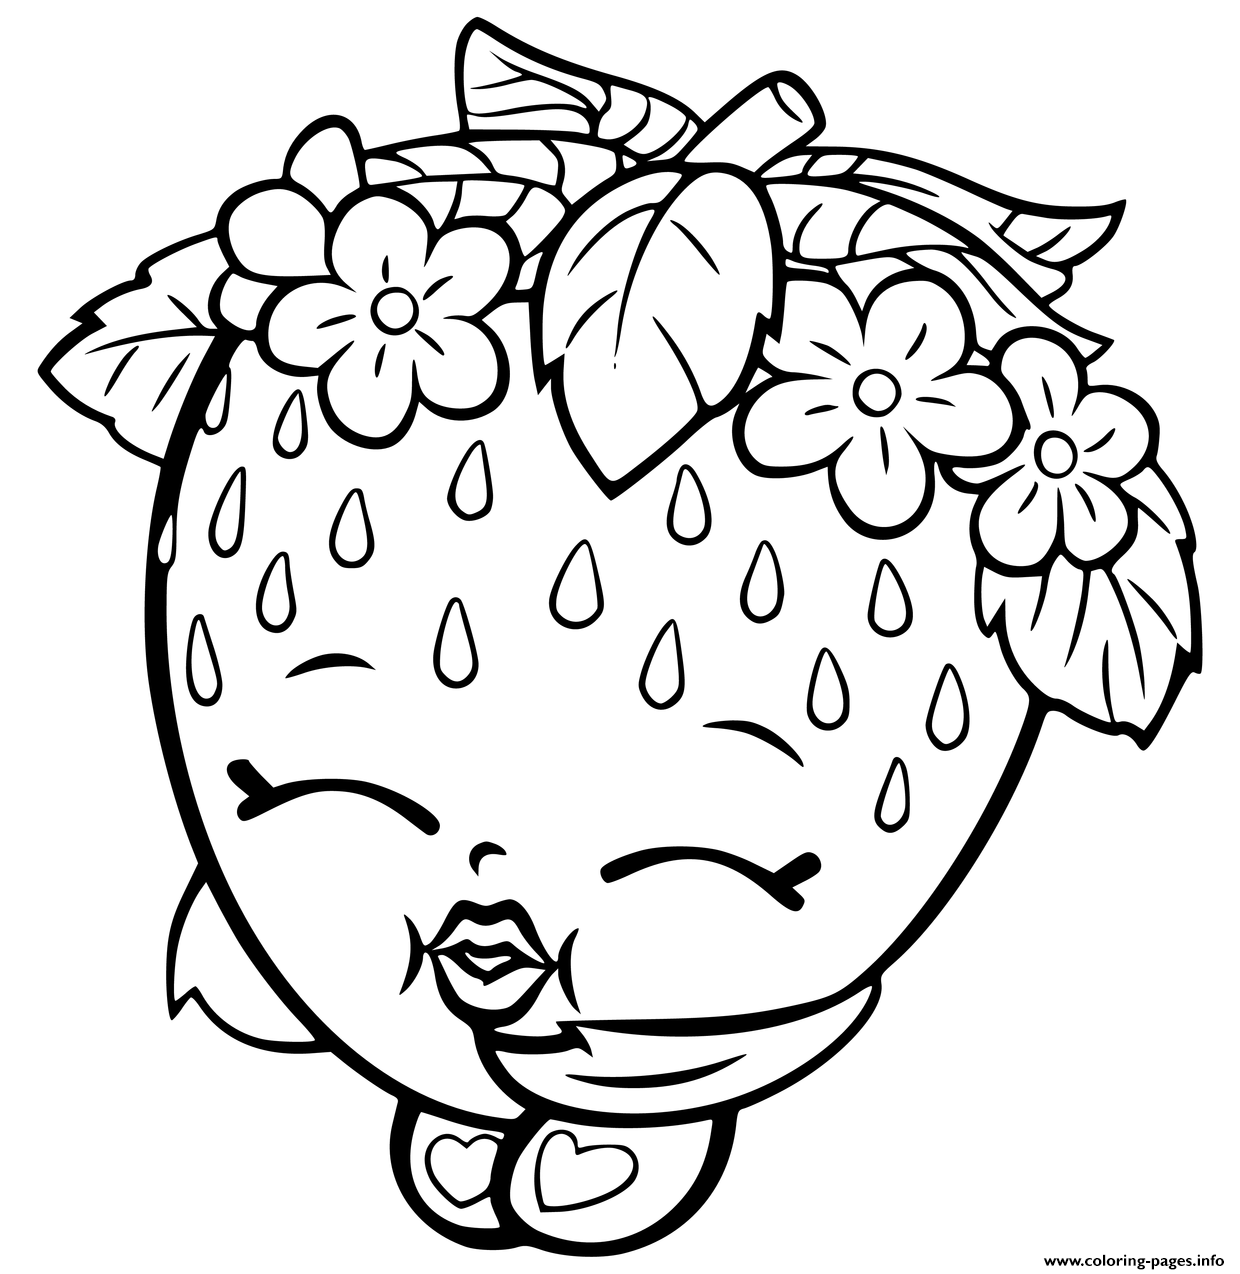 Shopkins Strawberry Coloring Pages